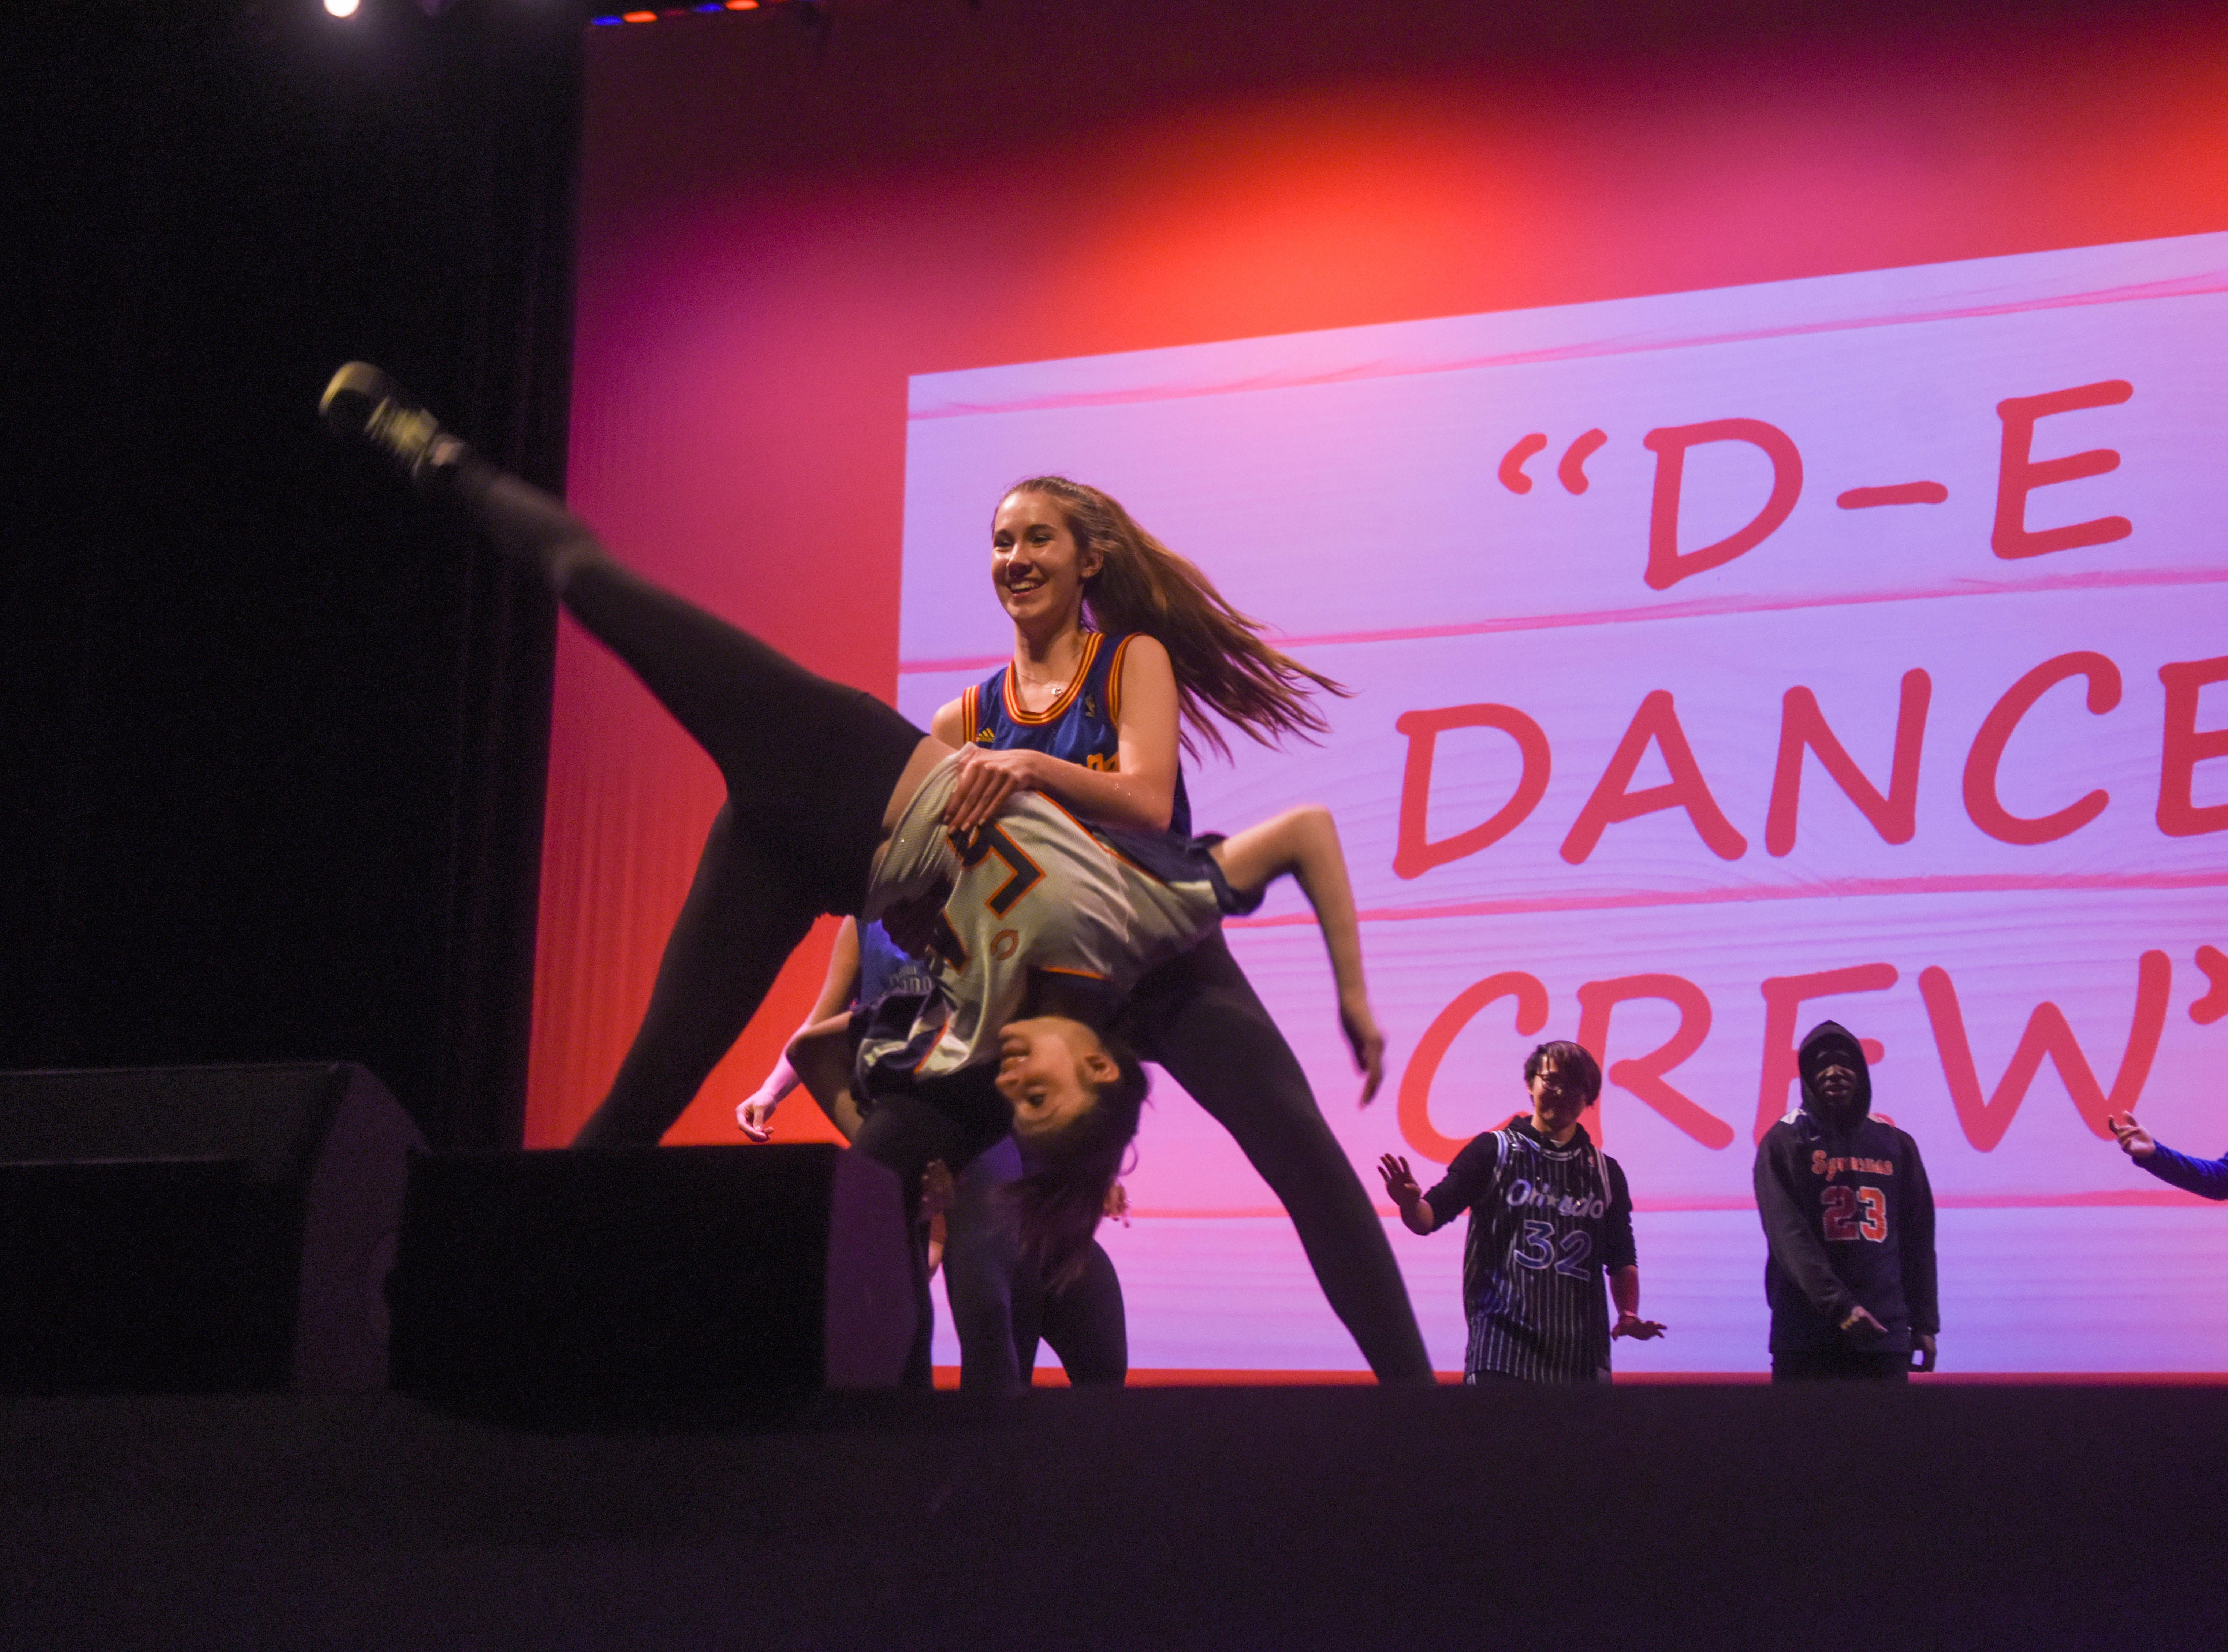 The D-E Dance Crew. The 2019 Englewood Idol was held at bergenPAC theater. The singing competition is open to any high school student who currently lives or goes to school in Englewood, NJ. This years winner was Genesis Capellan. 01/11/2019